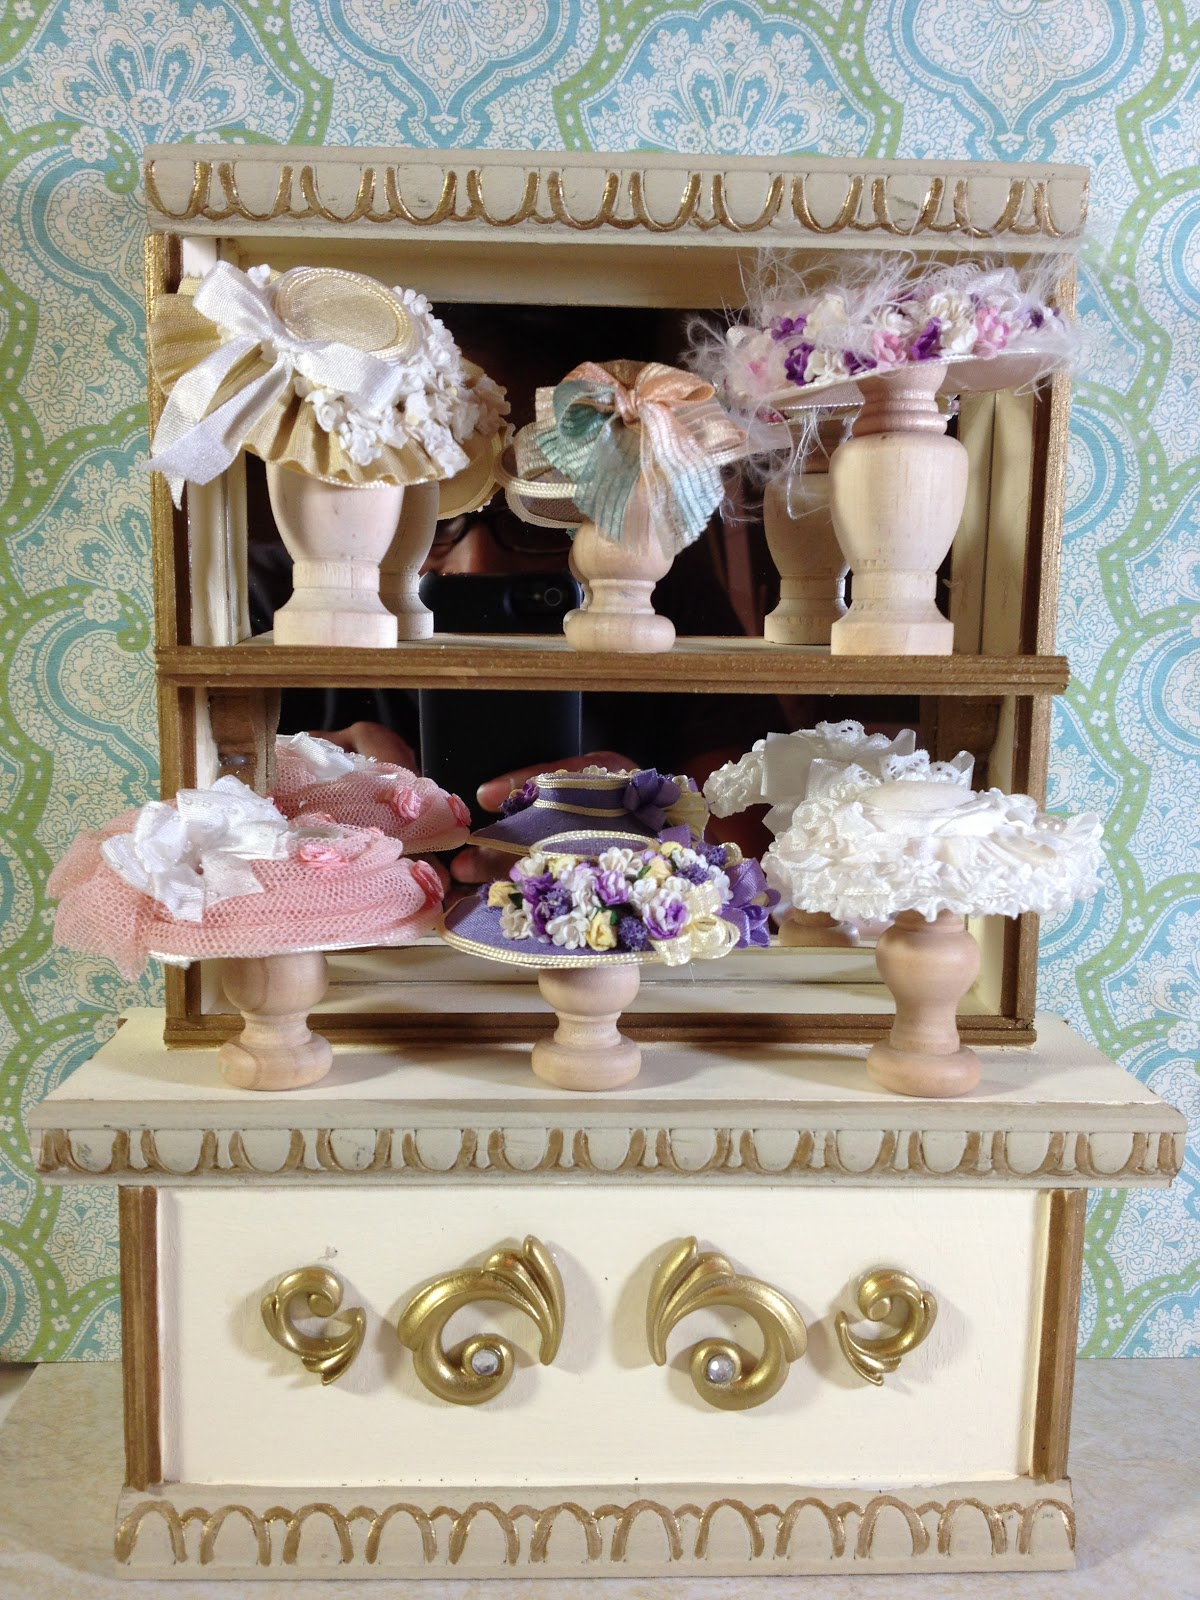 3a607e7b5fb Jocelyn's Mountfield Dollhouse: Update: Hat Shop Display Cabinet